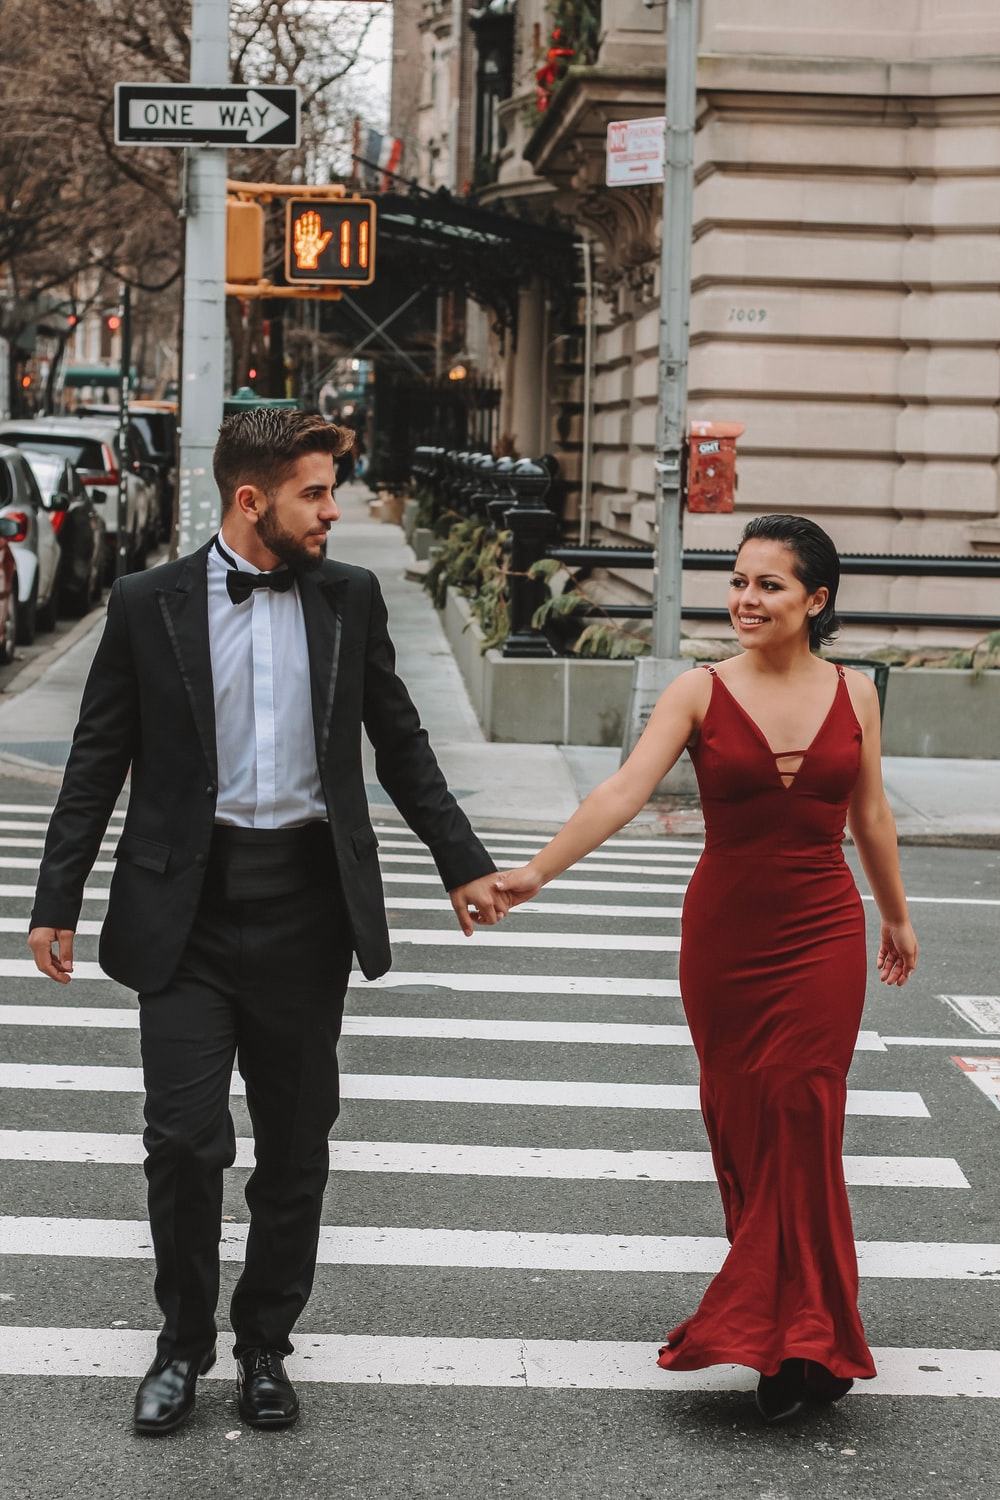 man and woman crossing the street at the pedestrian lane